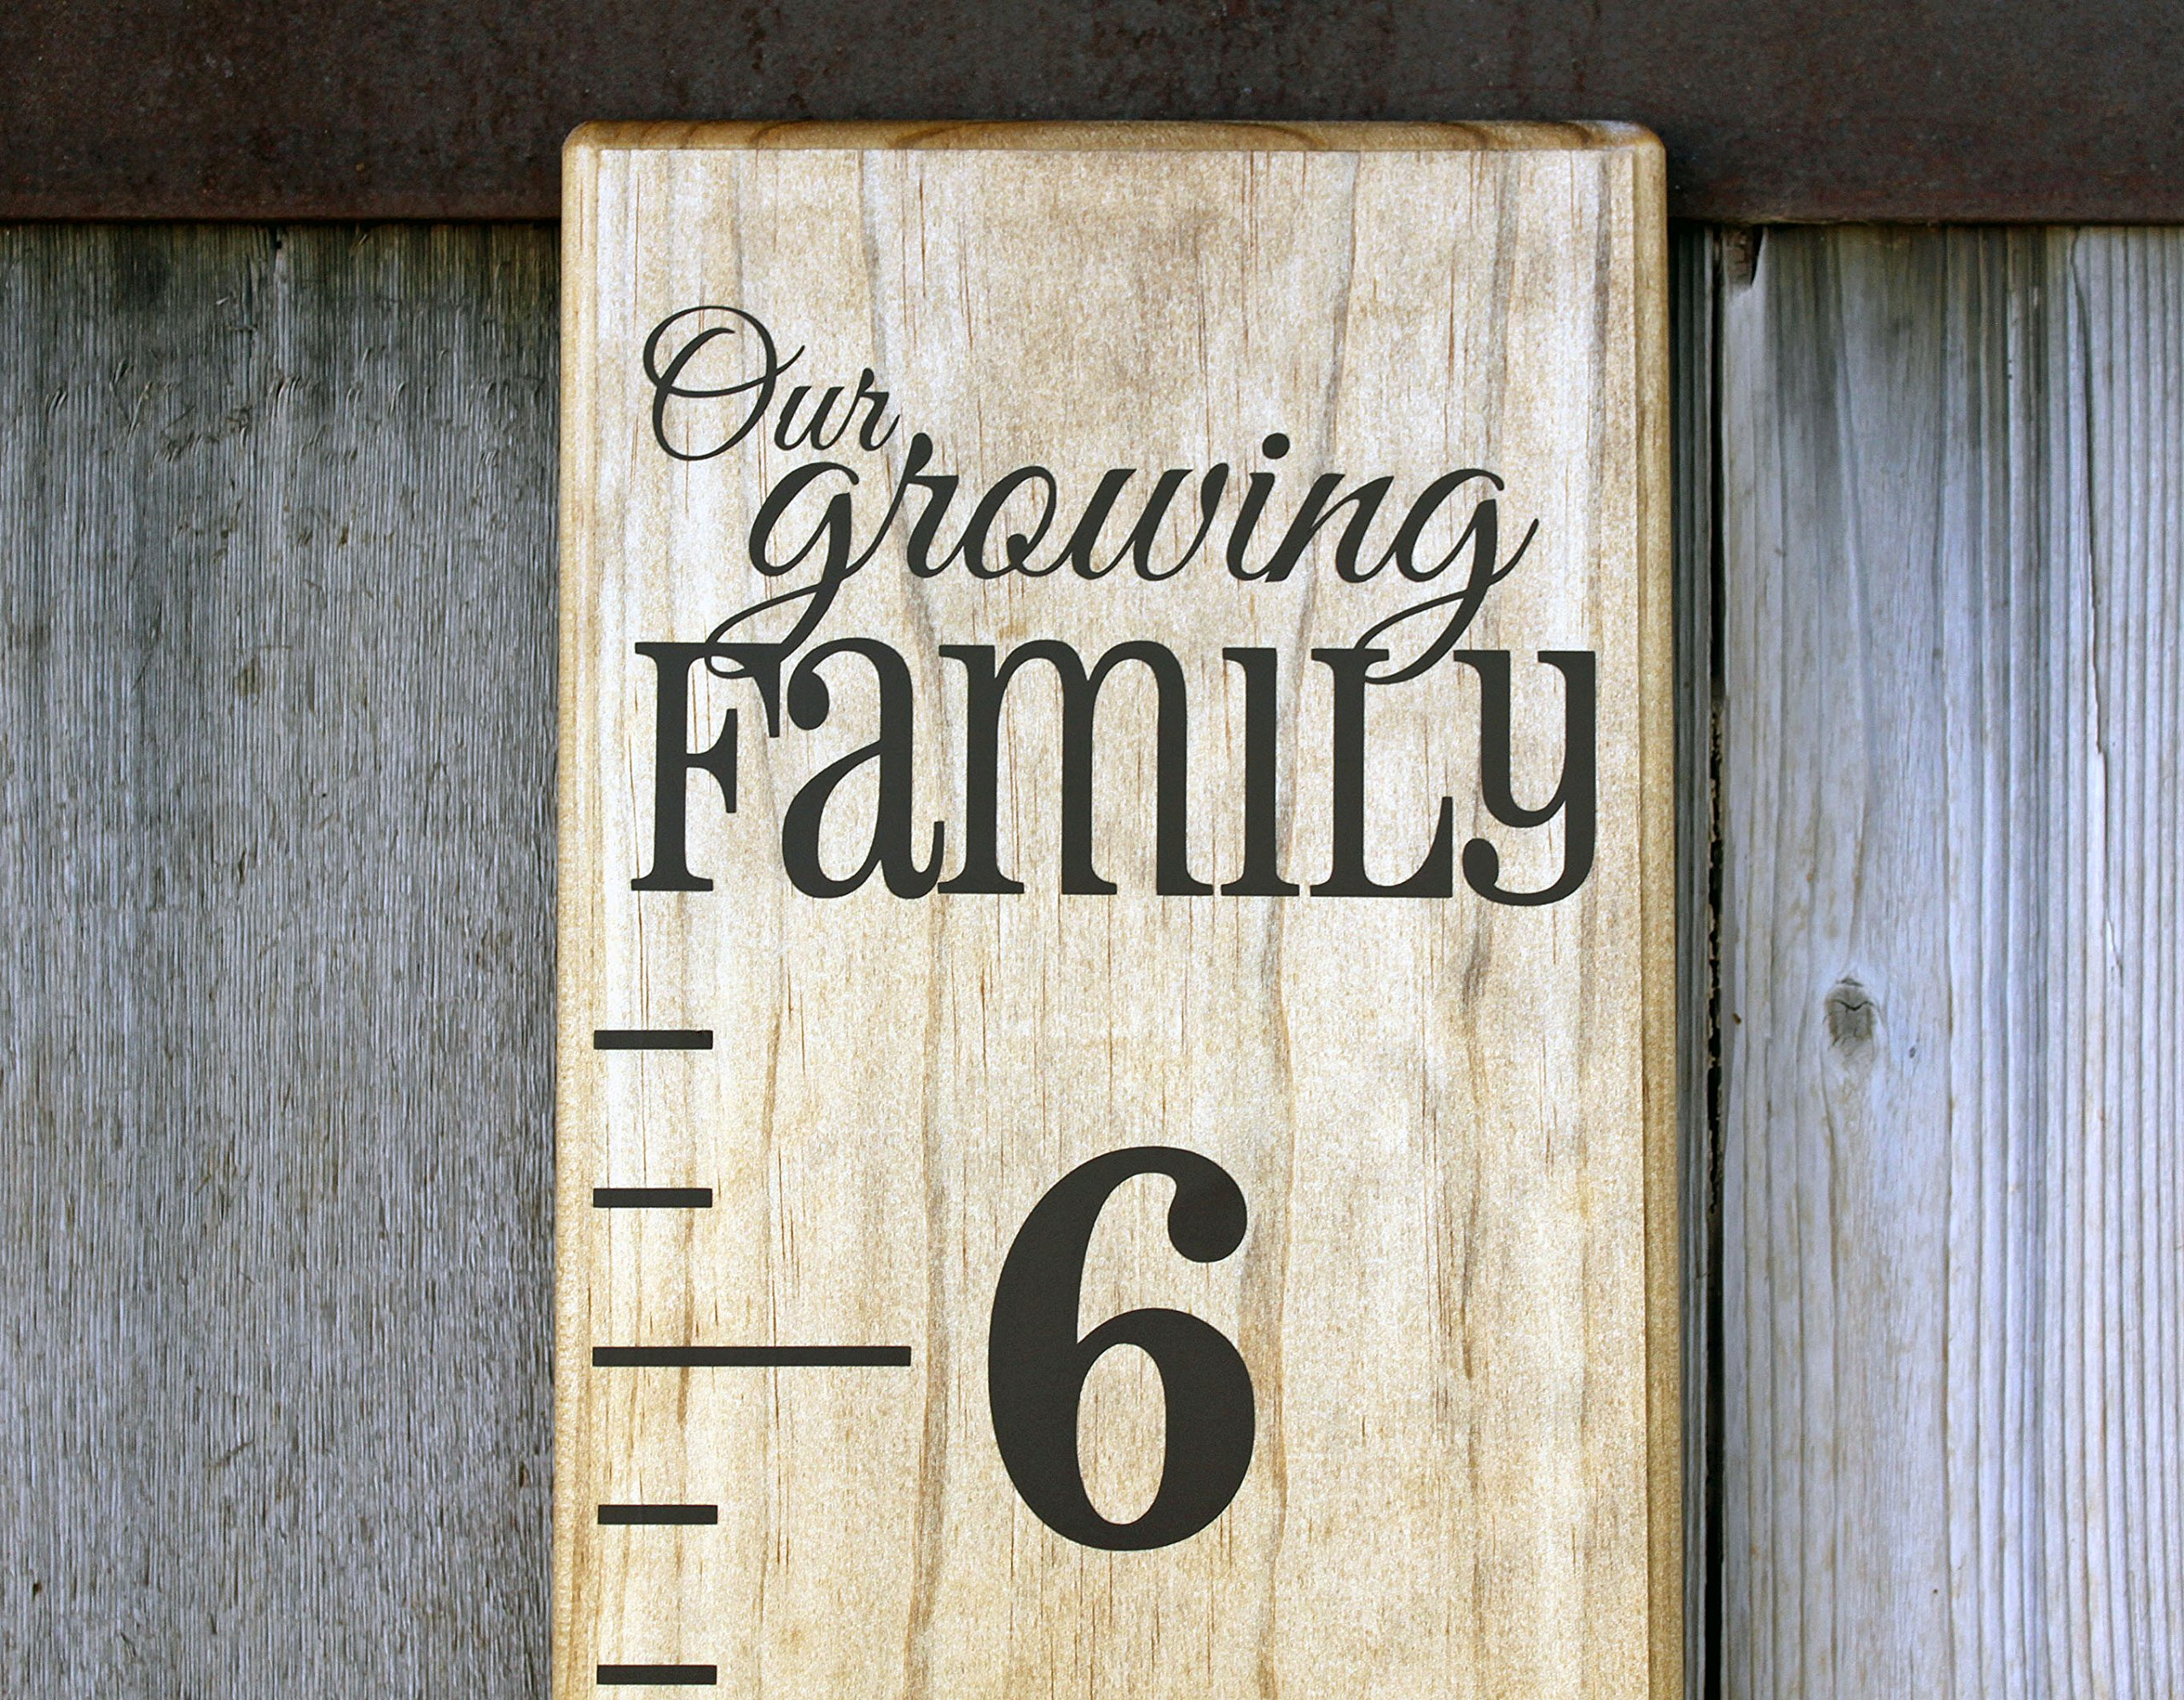 DIY Vinyl Growth Chart Ruler Decal Kit, Our Growing Family by Little Acorns